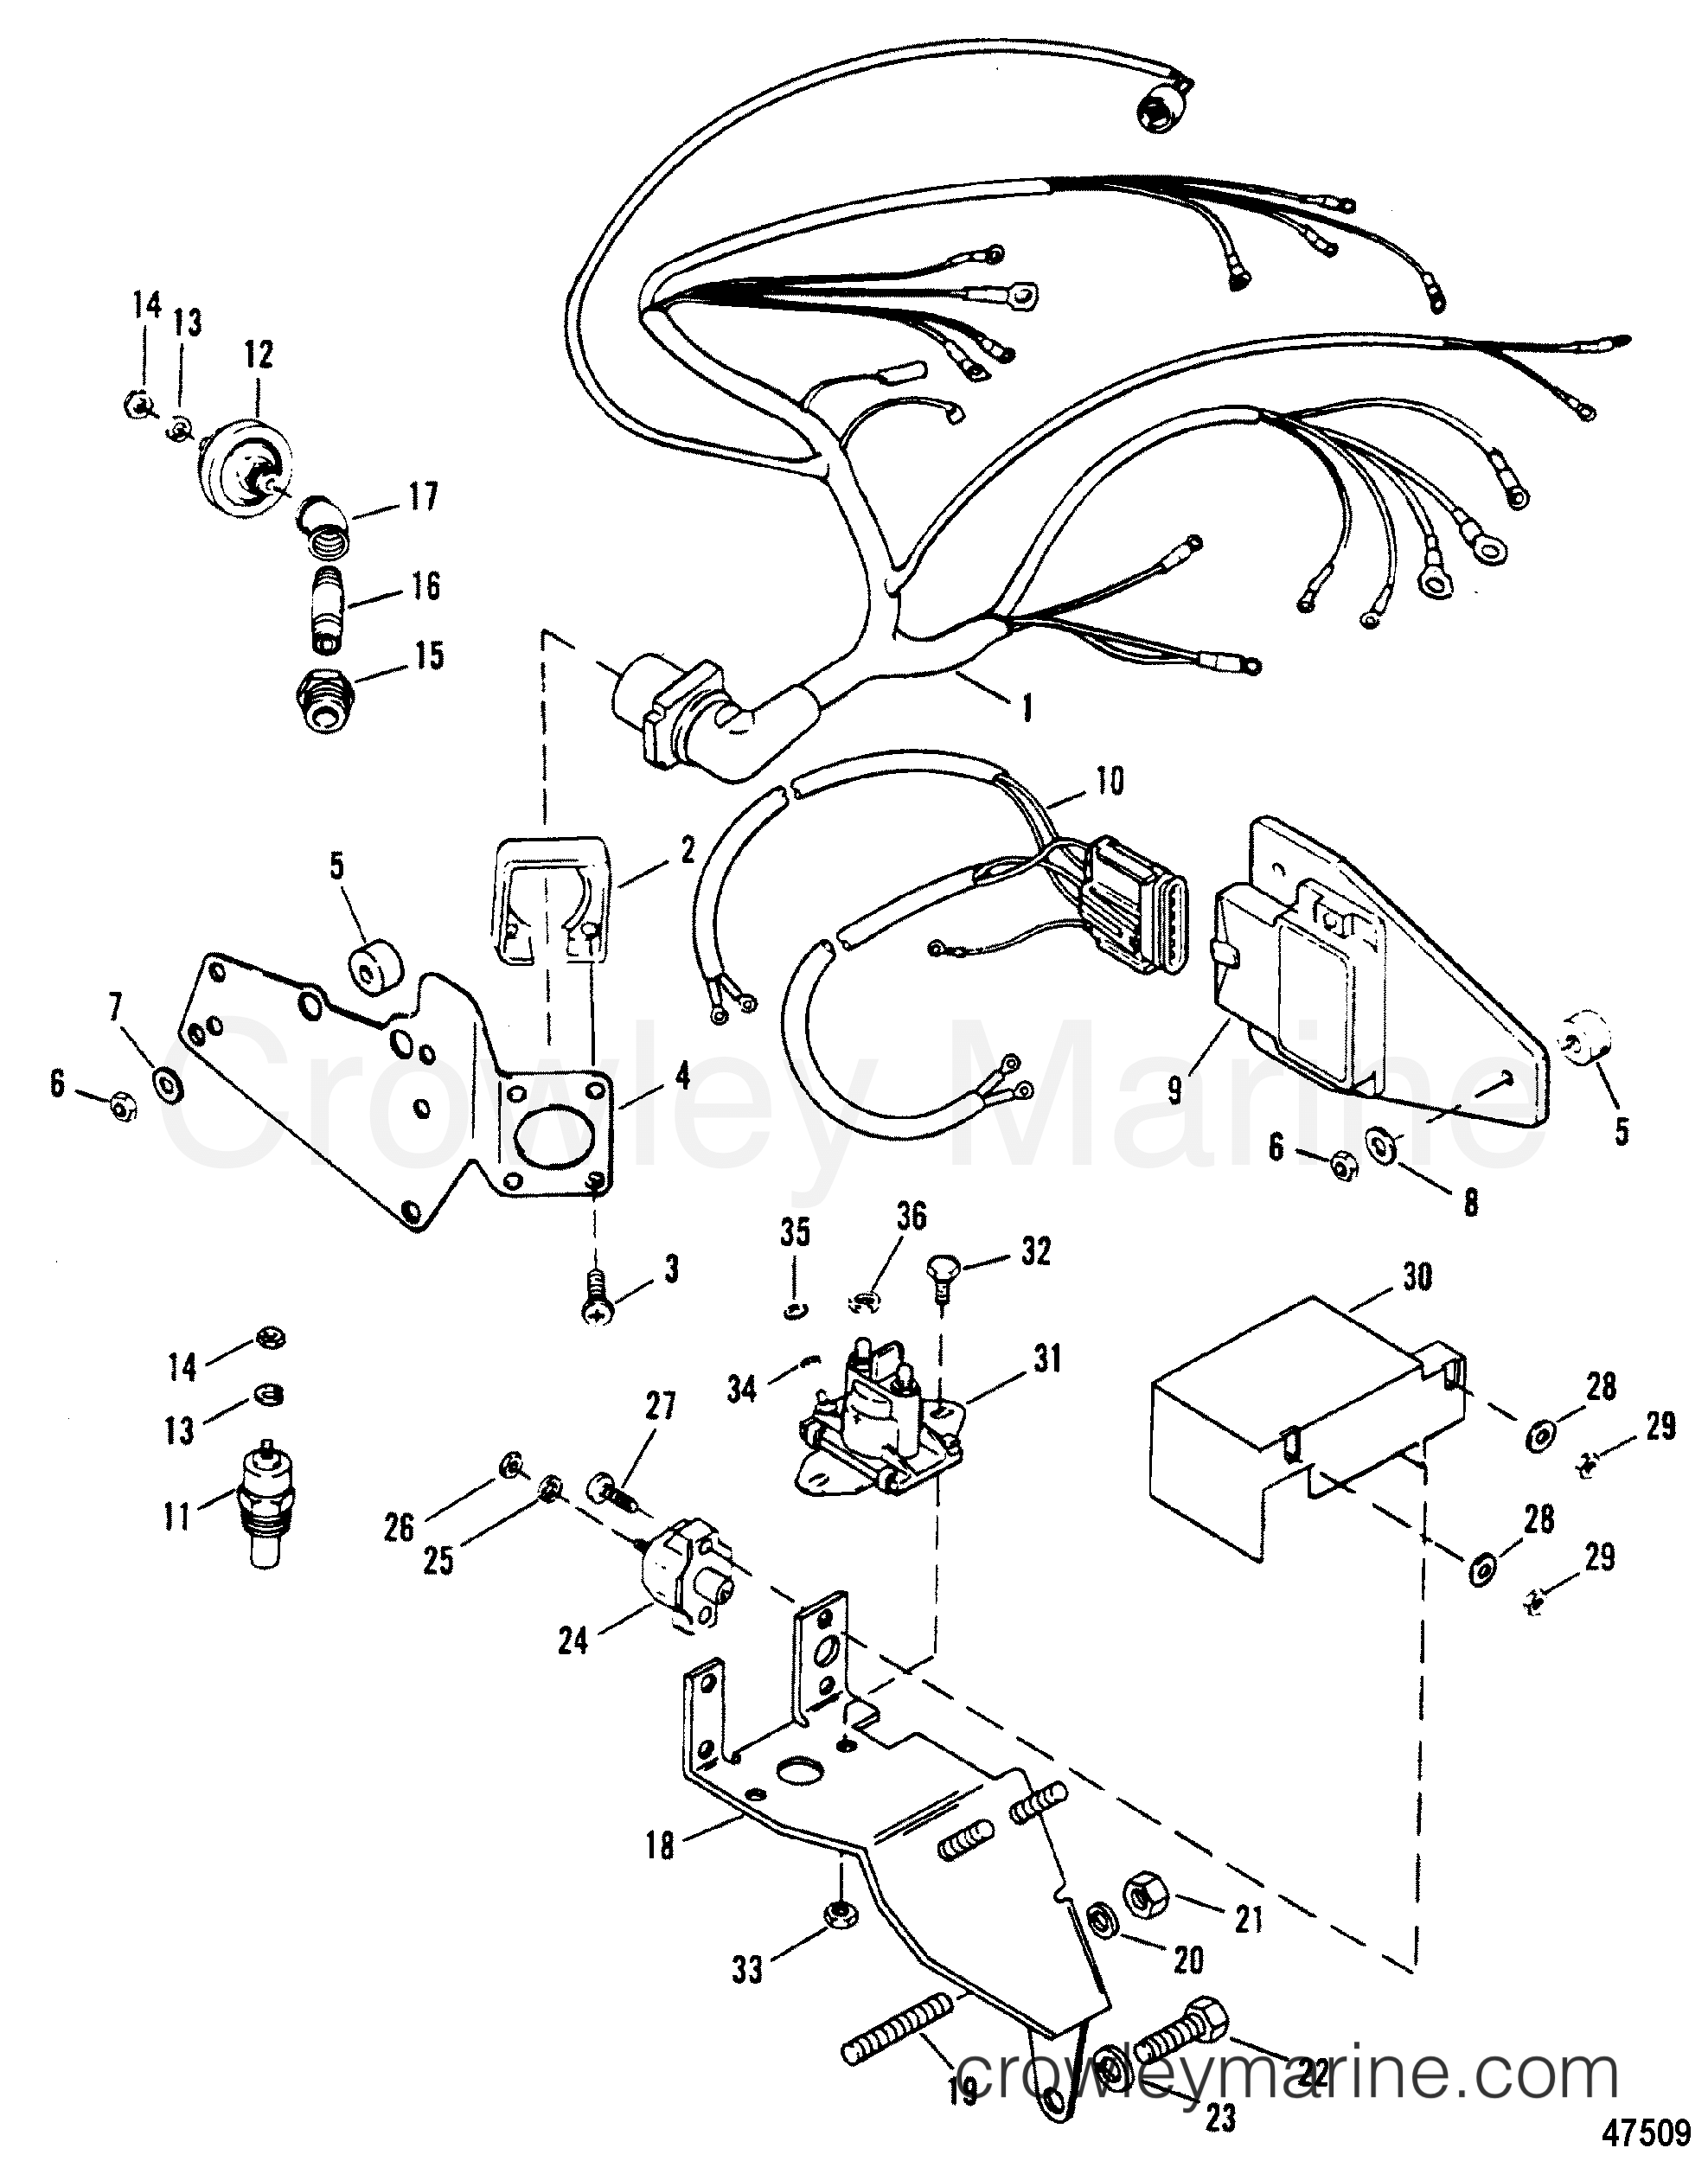 WIRING HARNESS AND ELECTRICAL COMPONENTS(EXHAUST BELOW